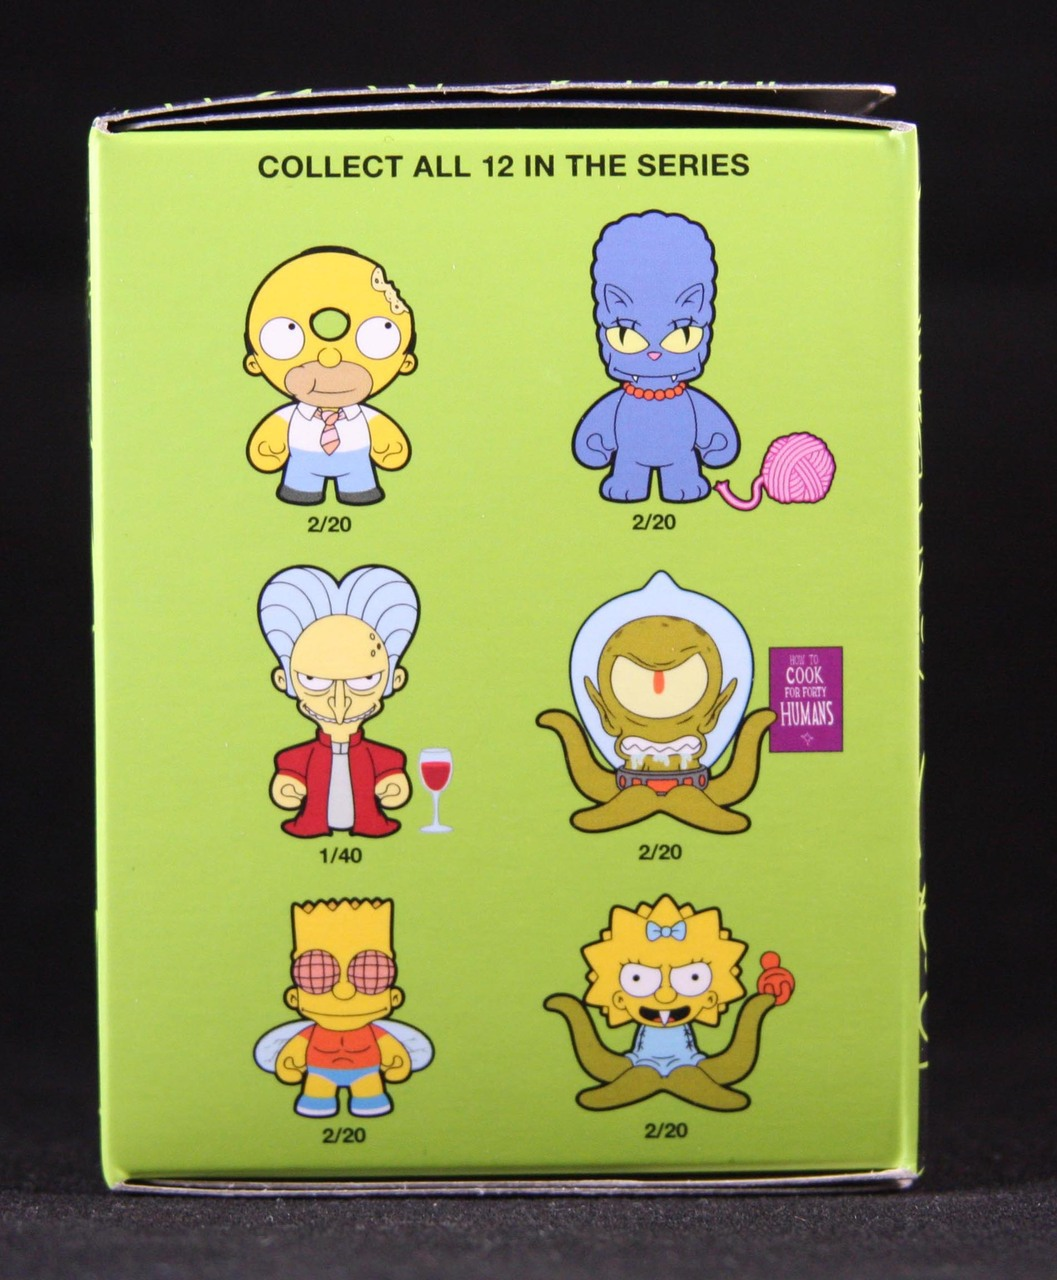 simpsons treehouse of horror blind box - blindboxes